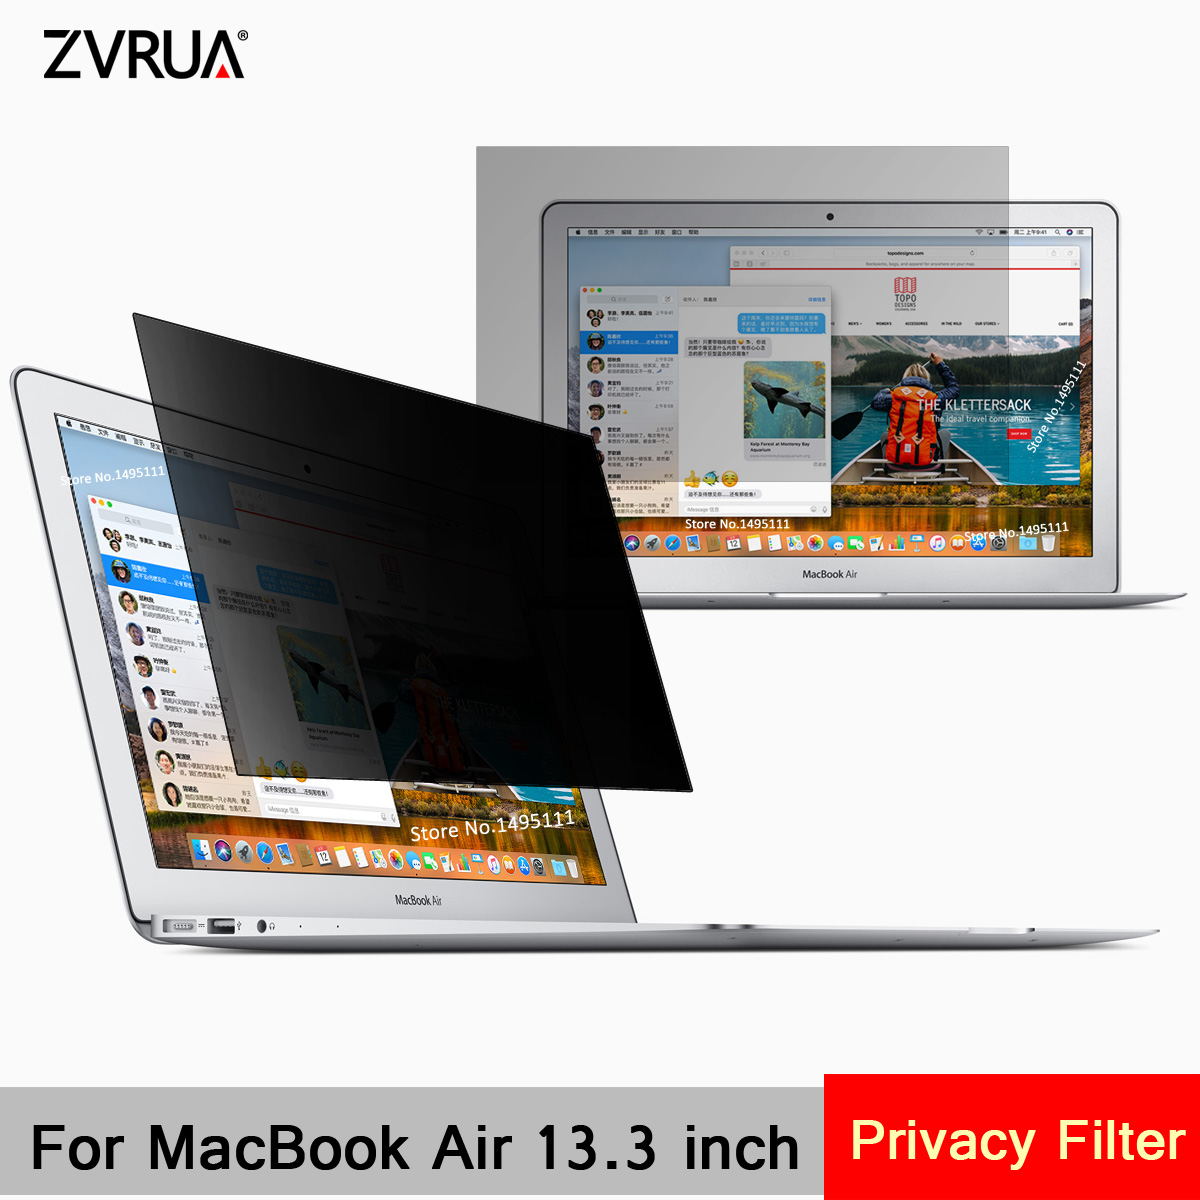 For Apple MacBook Air 13.3 inch (286mm*179mm) Privacy Filter Laptop Notebook Anti-glare Screen protector Protective film pet 360 degree privacy filter for new ipad 9 7 2017 2018 air 2 pro 9 7 inch anti glare screen protector protective film